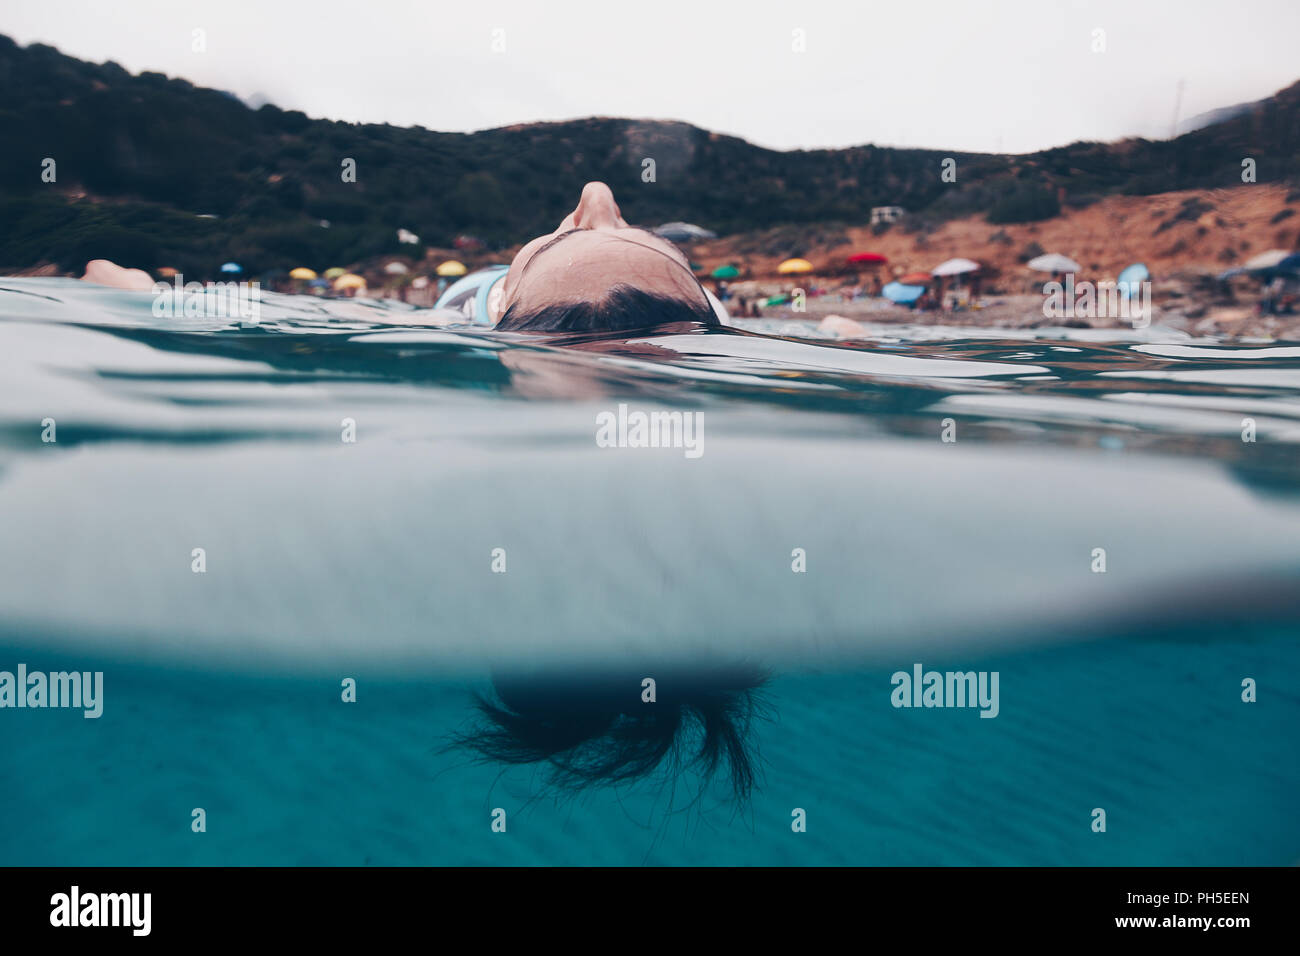 woman taking rest upon the water surface with her eyes closed - relax and meditation concept. - Stock Image